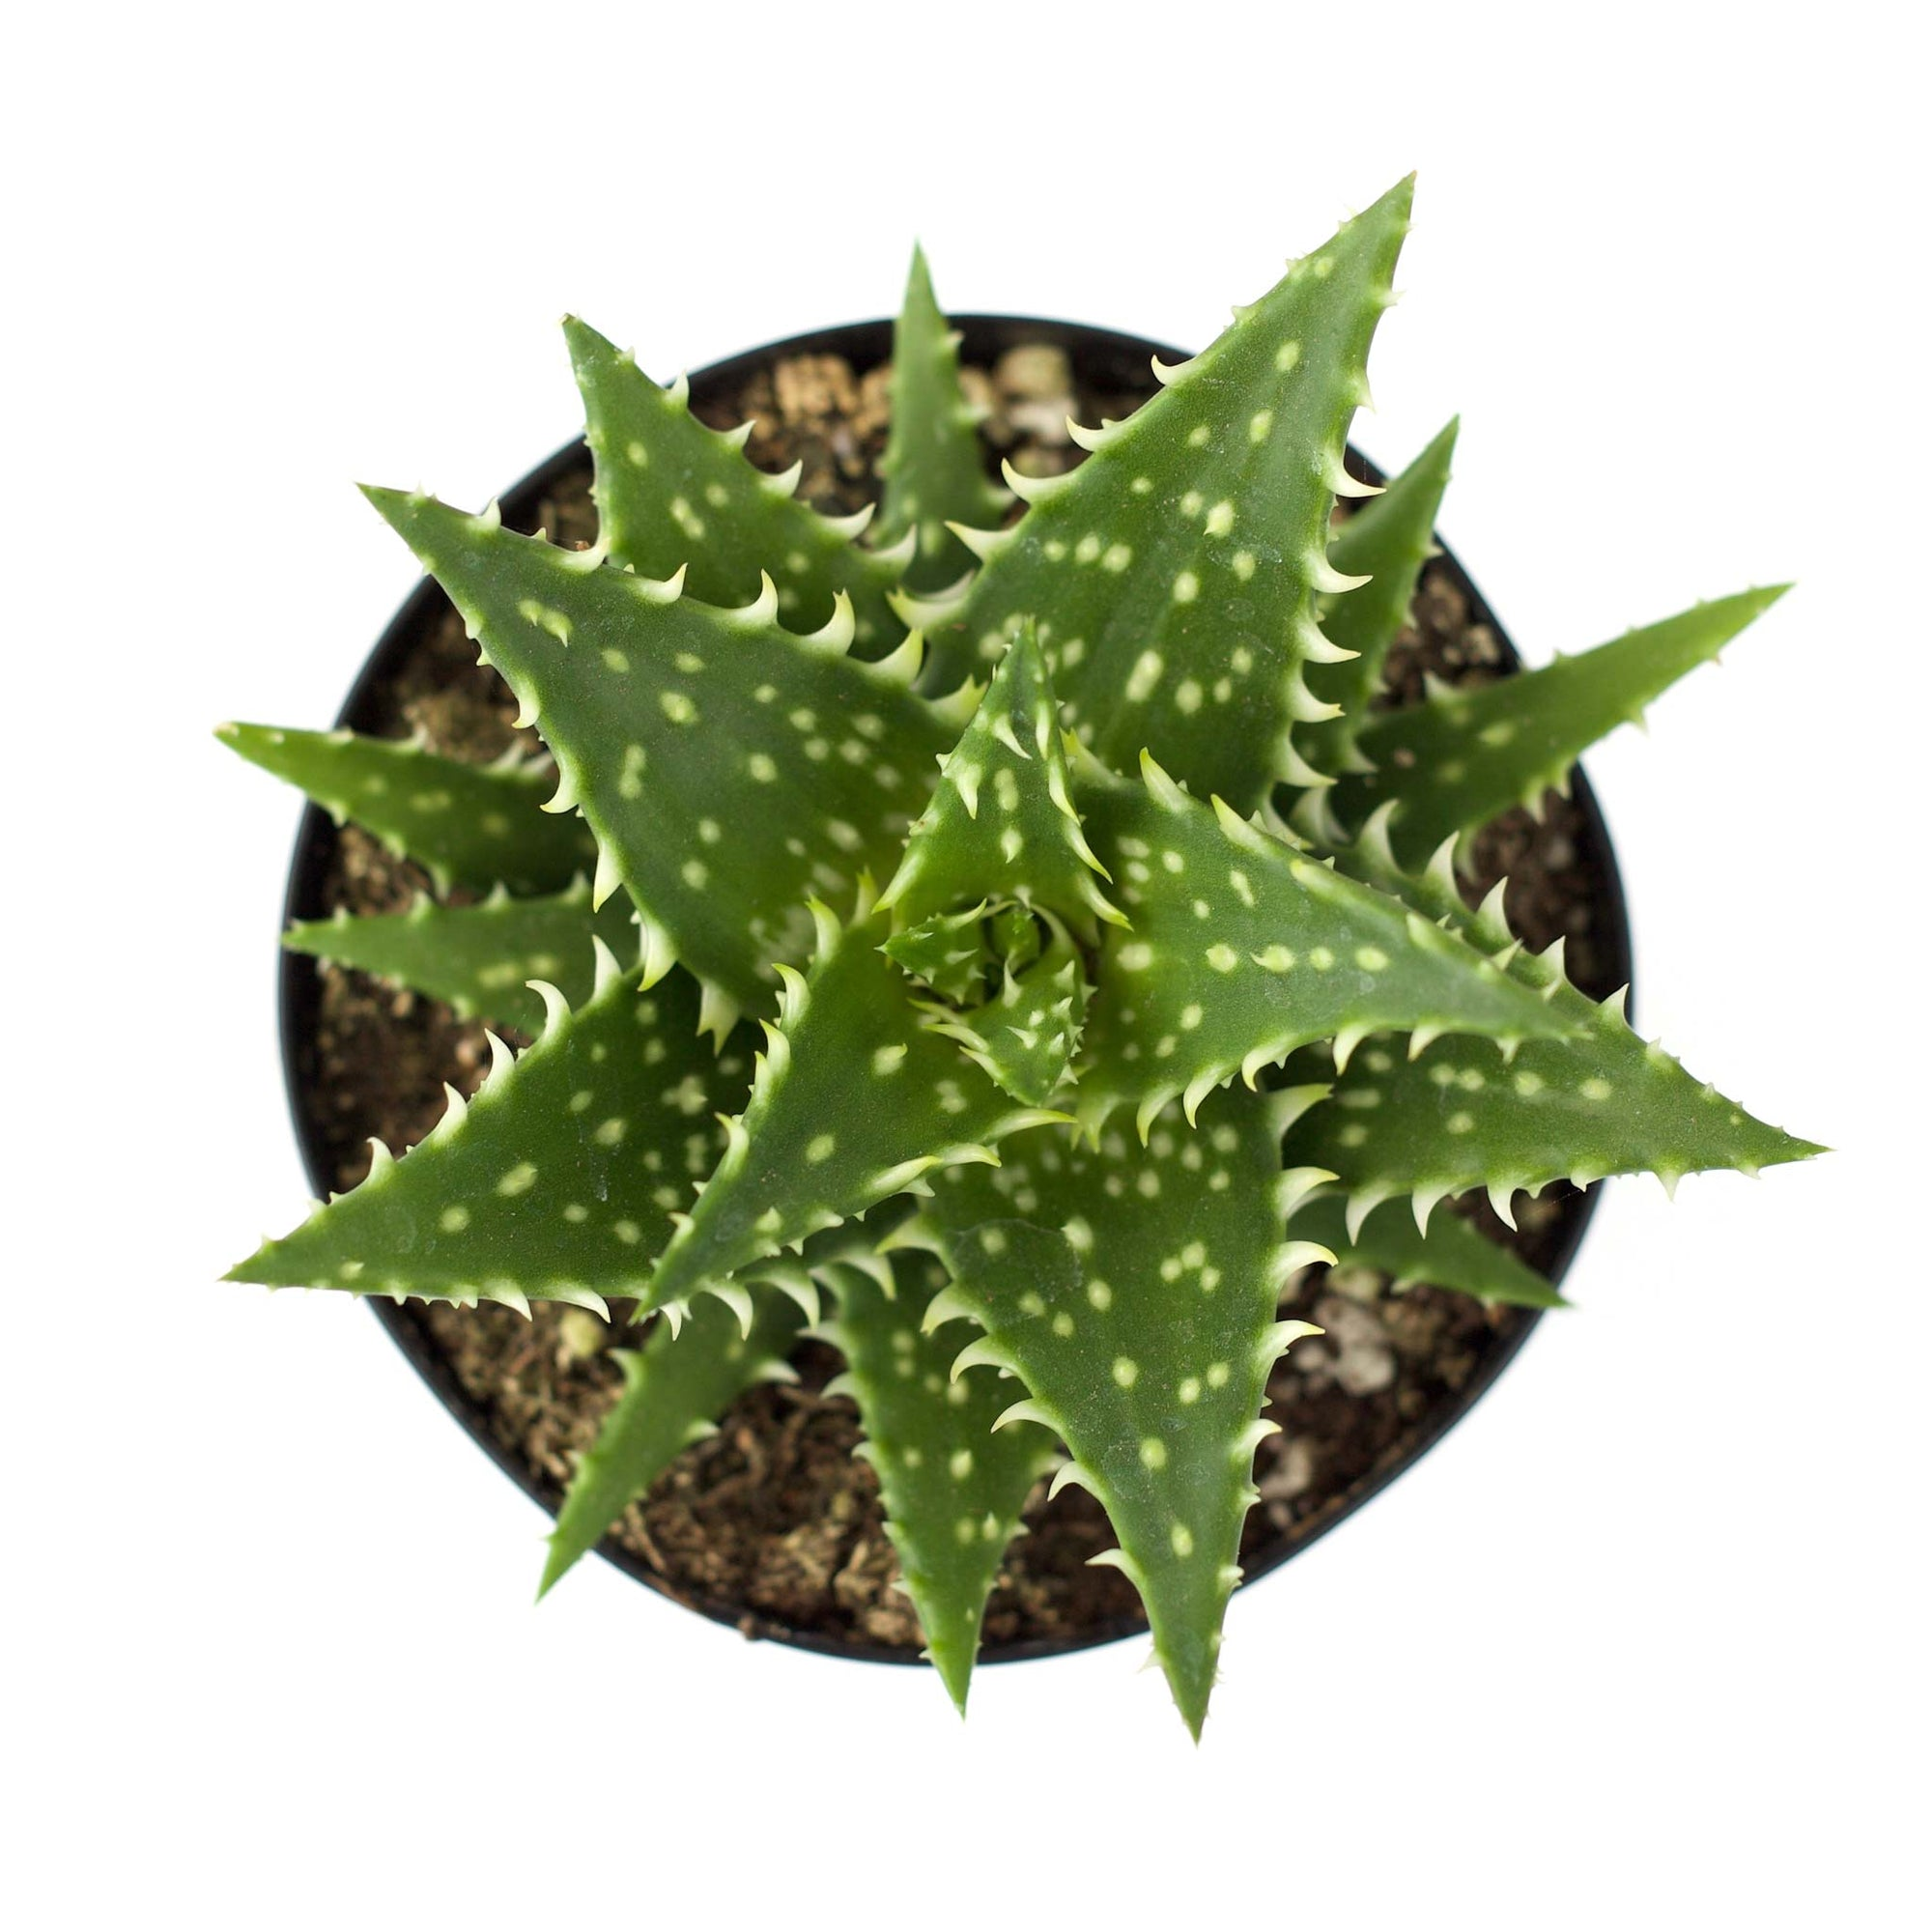 Aloe 'Minnie Belle'